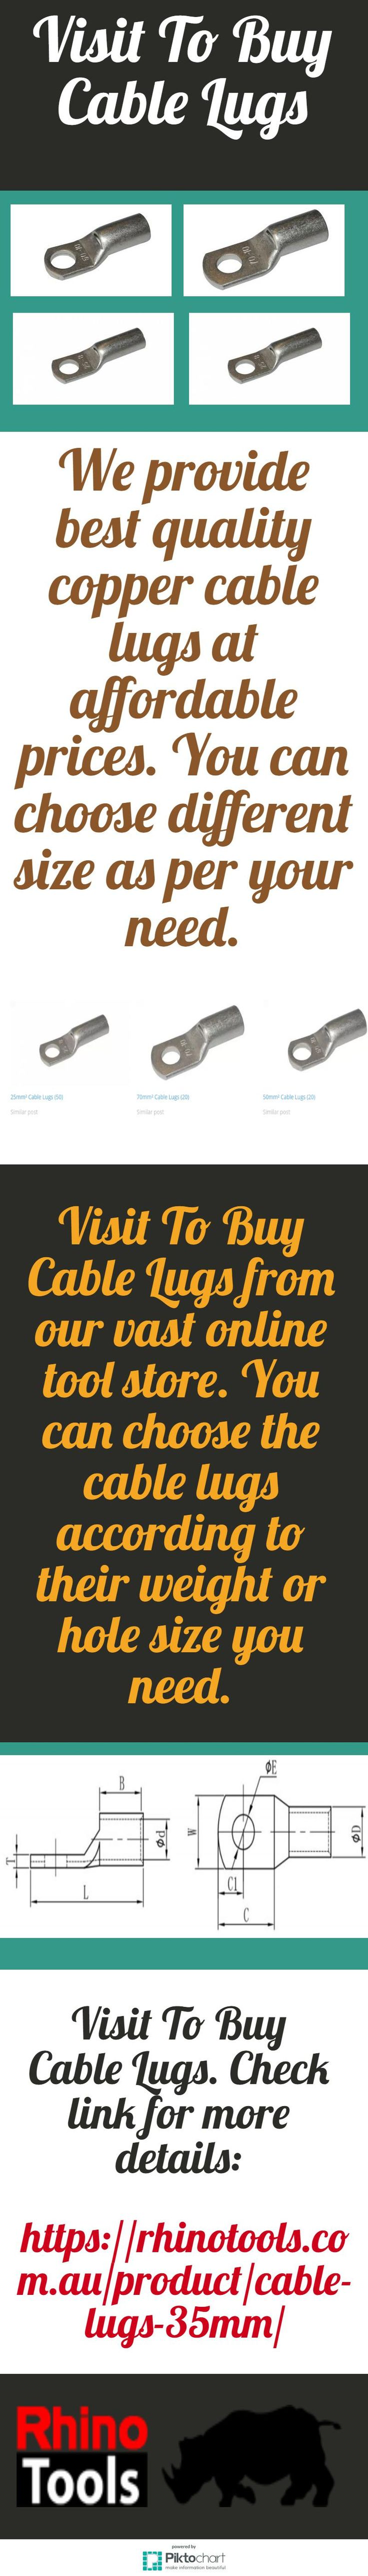 We provide best quality copper cable lugs at affordable prices. You can choose different size as per your need. Visit To Buy Cable Lugs. Check link for more details: https://rhinotools.com.au/product/cable-lugs-35mm/